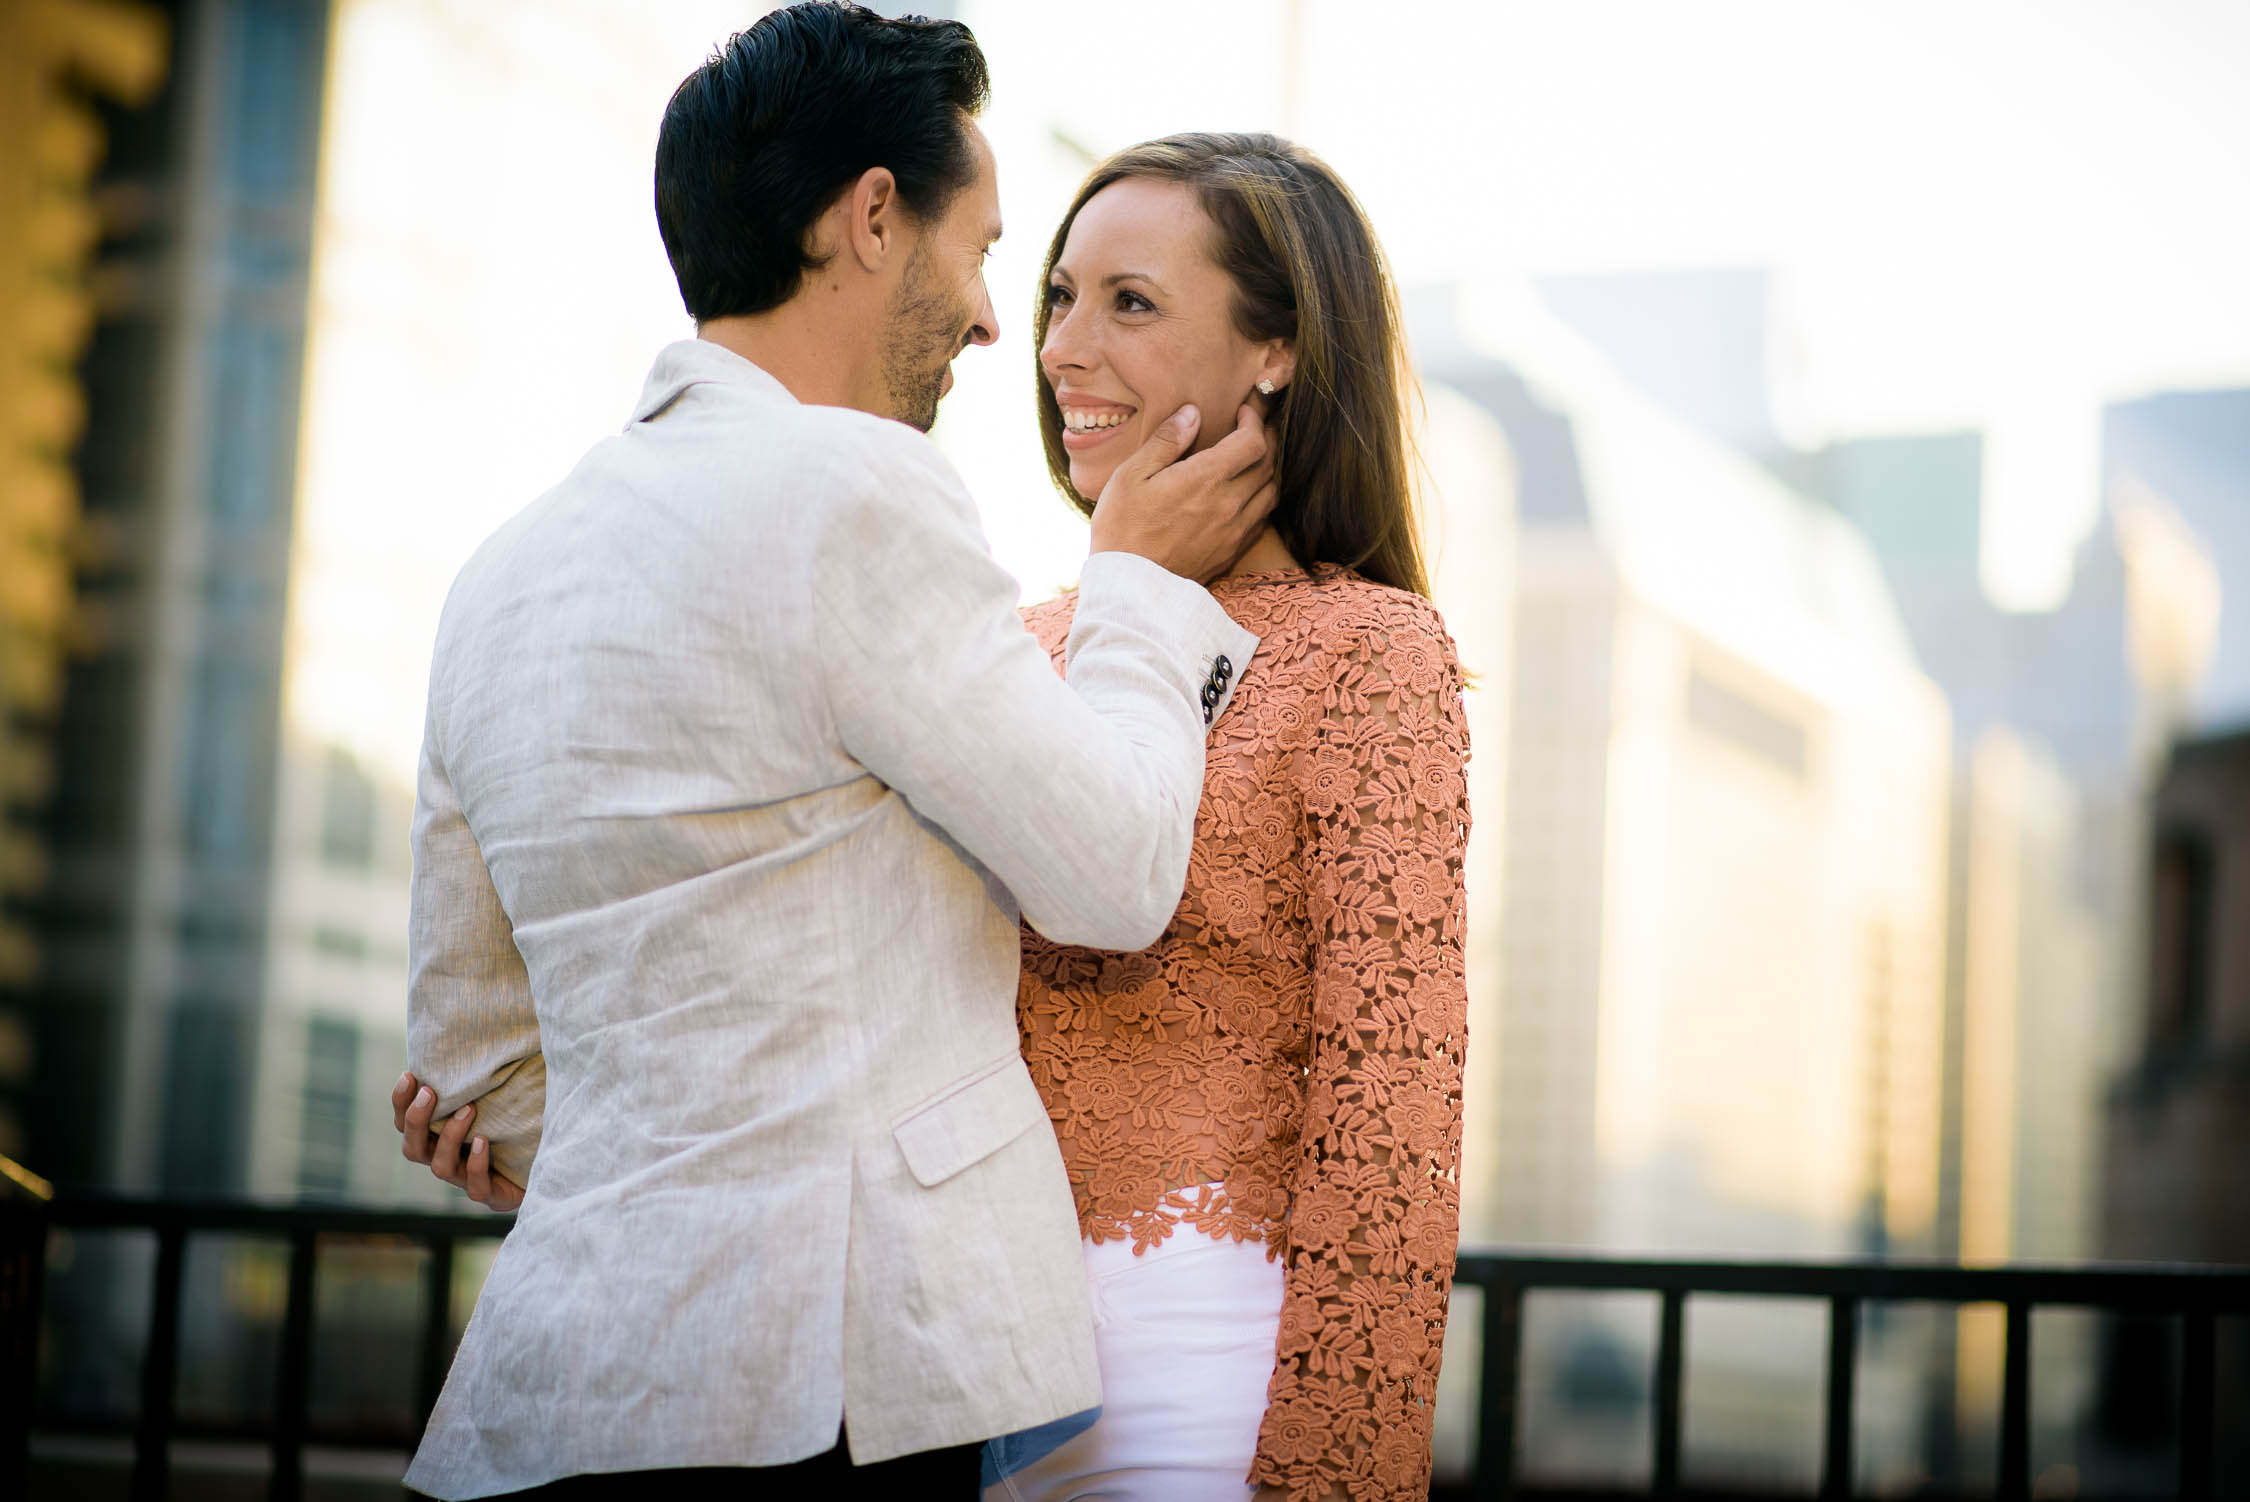 The couple embraces during their Chicago engagement session on the river.